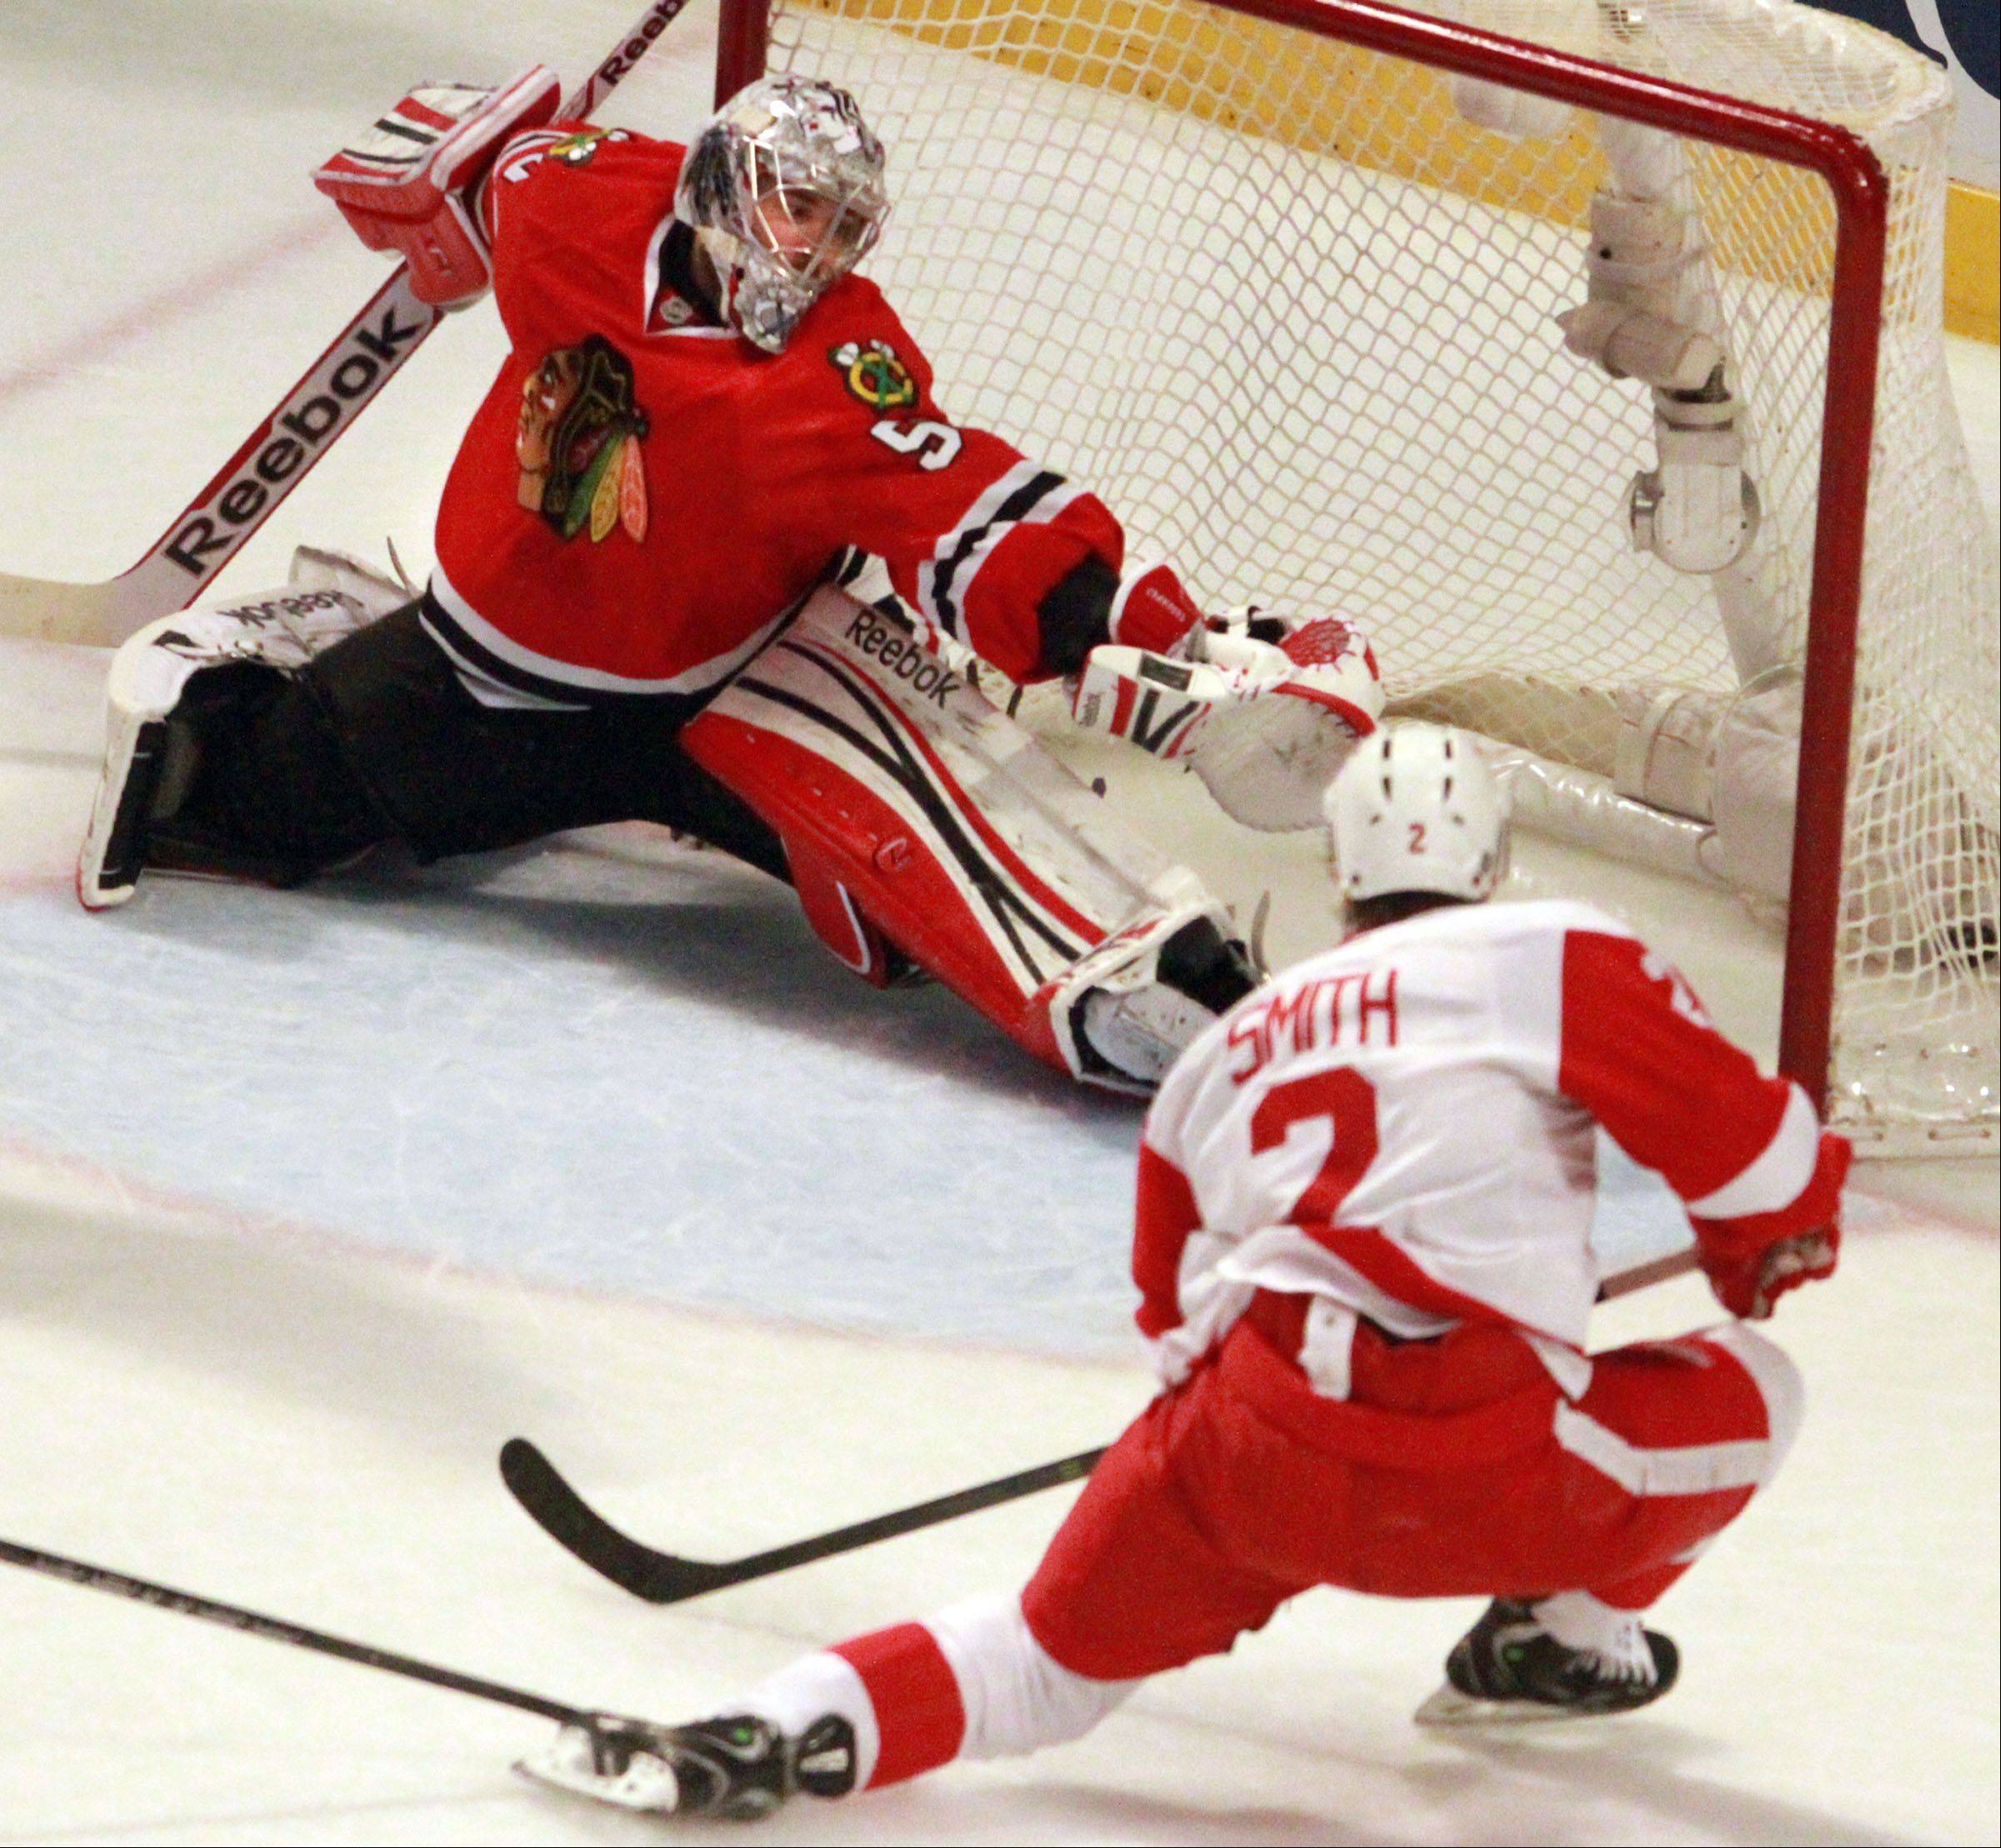 The Red Wings' Brendan Smith scores against Blackhawks goalie Corey Crawford during the second period Saturday.